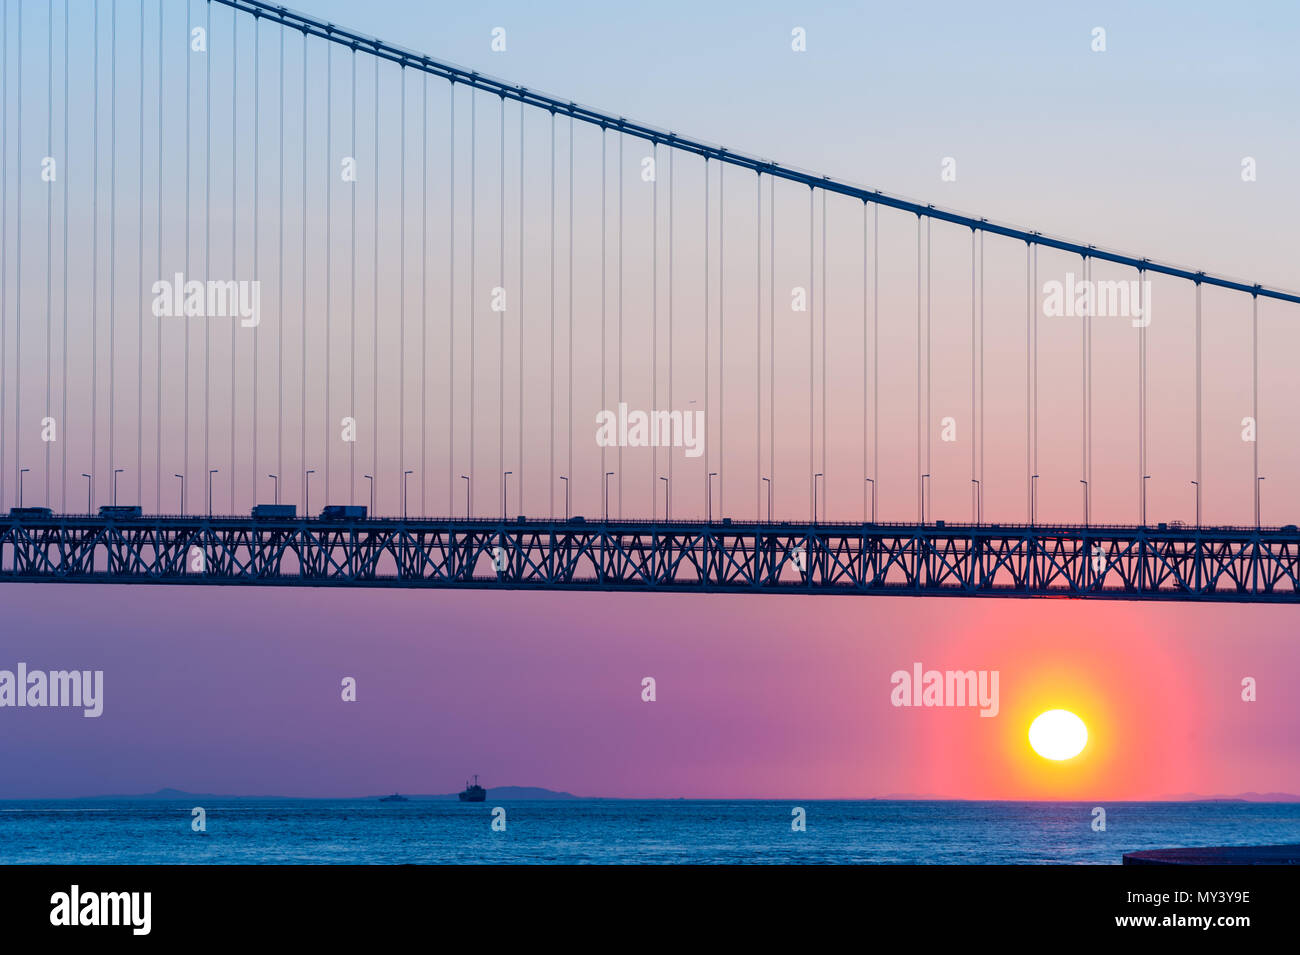 sunset with Akashi Kaikyo bridge on twilight sky at Kobe port, Japan - Stock Image